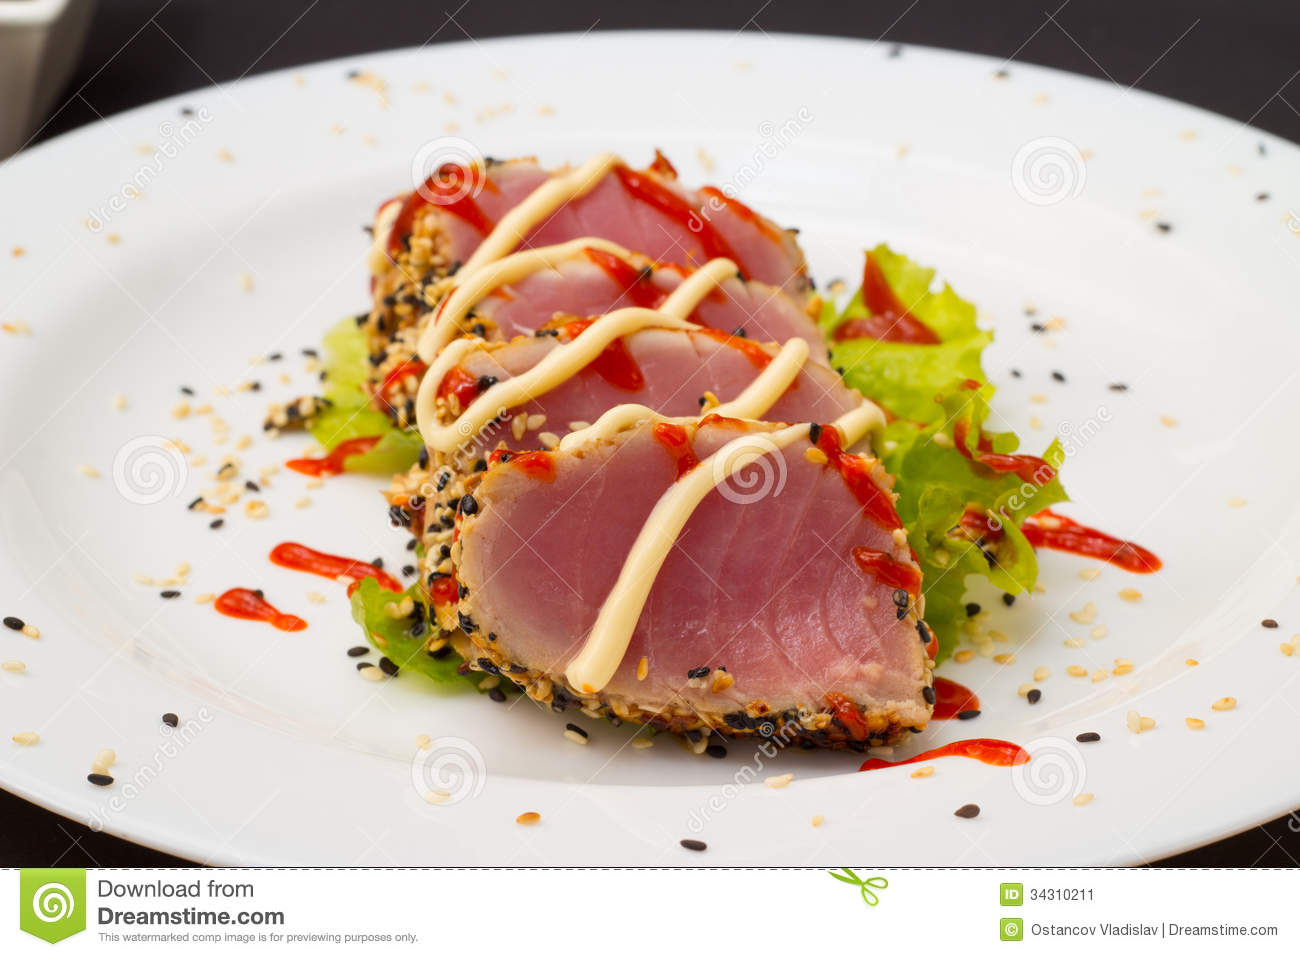 how to cook tuna fillet